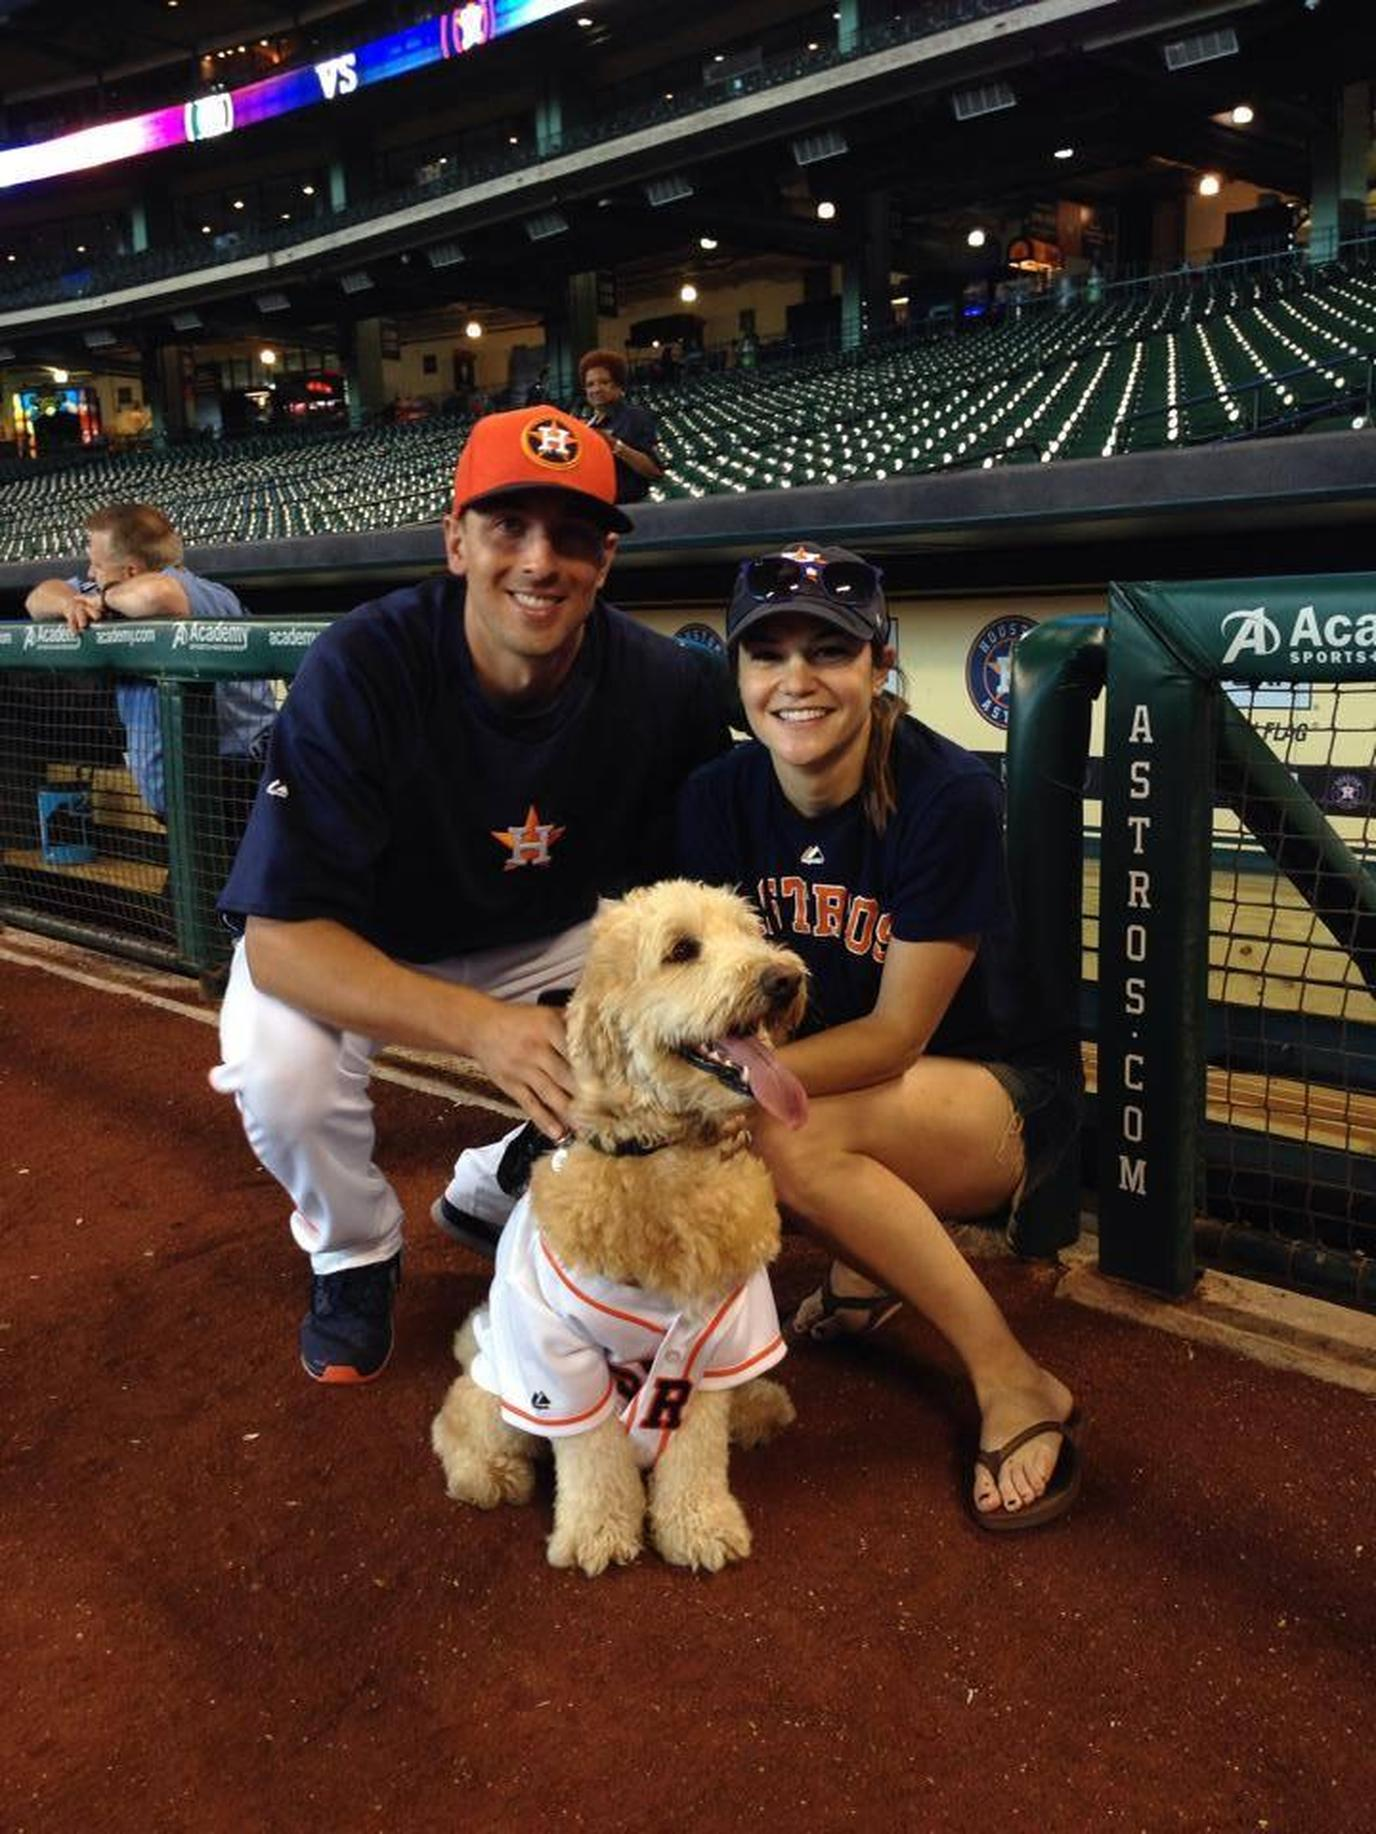 The Houston Astros host a Dog Day dog-friendly baseball game.